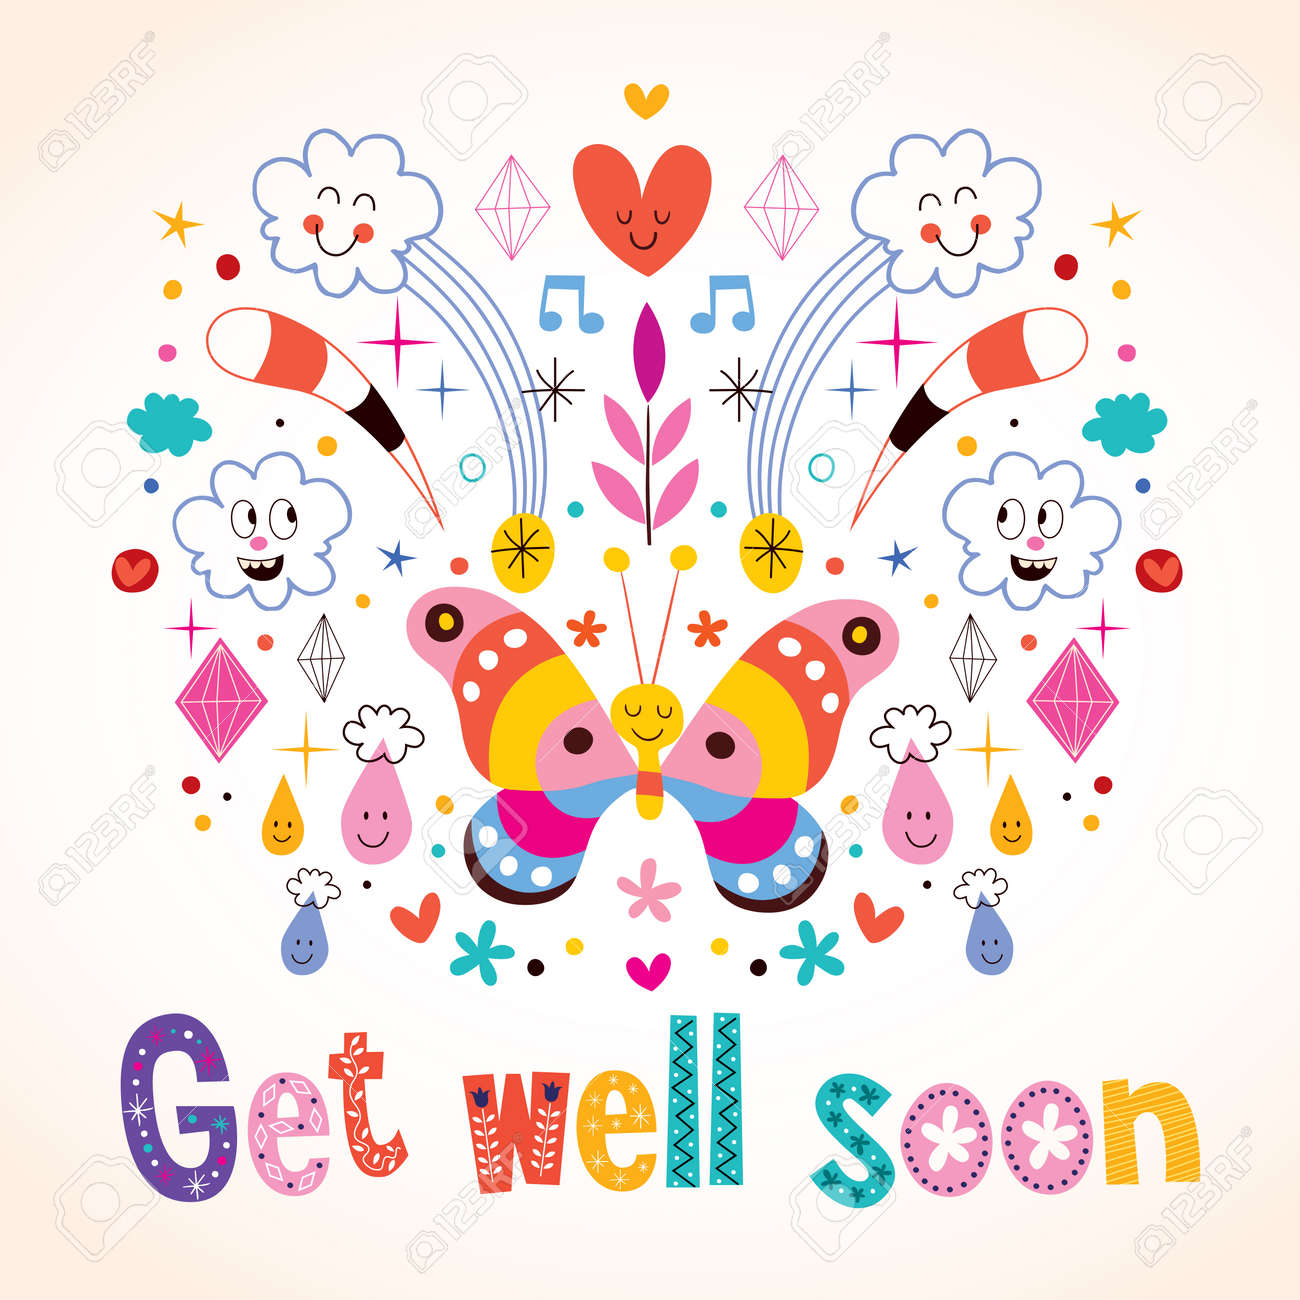 Classy Get Well Soon Greeting Card Get Well Soon Card Stock Royalty Free Get Well Soon Card Images Get Well Soon Card Ideas Friend Get Well Soon Card Images cards Get Well Soon Card